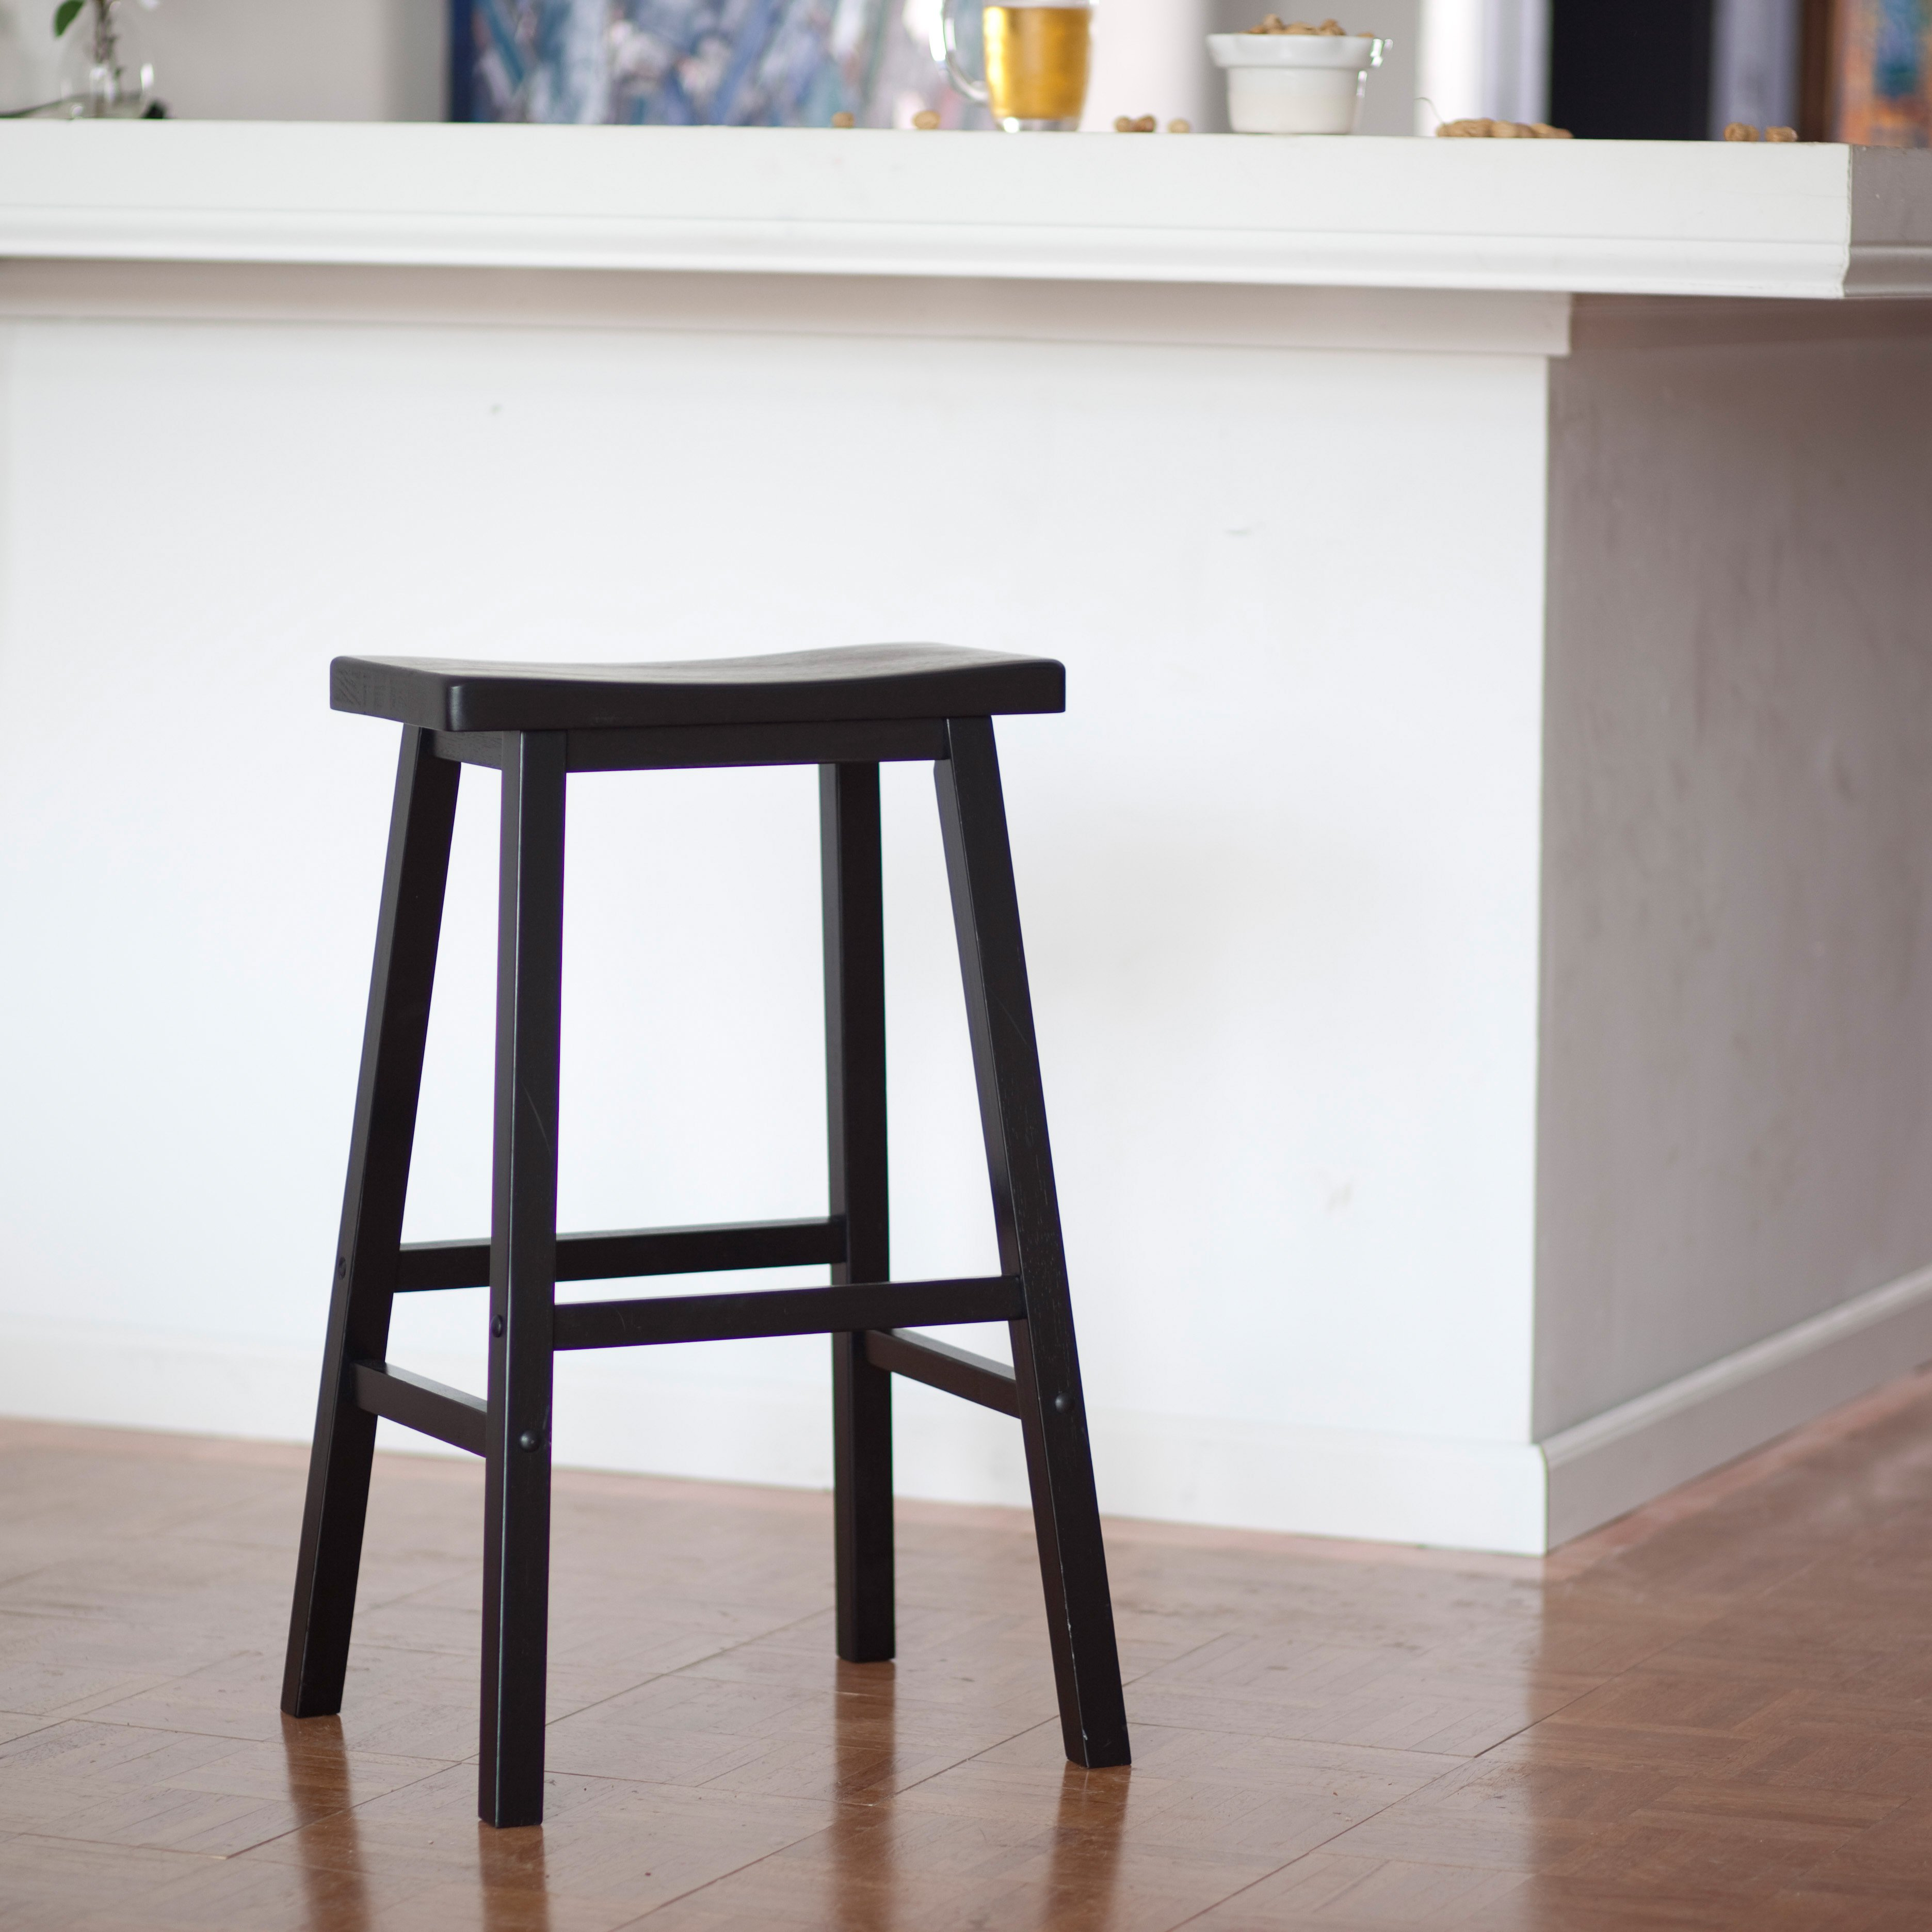 Winsome 29  Bar Saddle Stool in Black Image 3 ... & Winsome 29